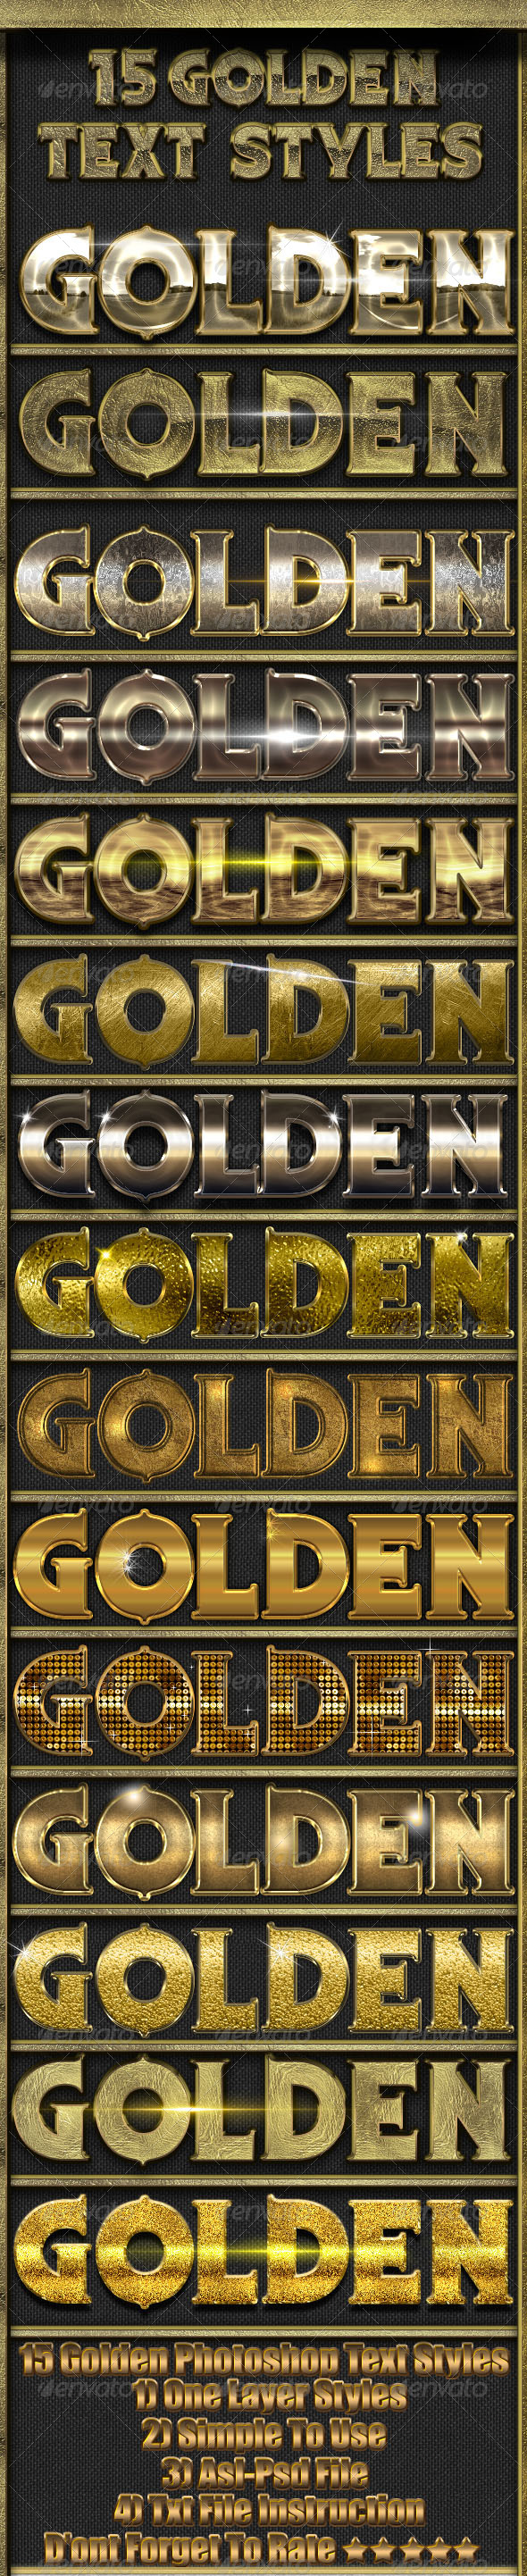 15 Golden Text Styles - Photoshop Add-ons